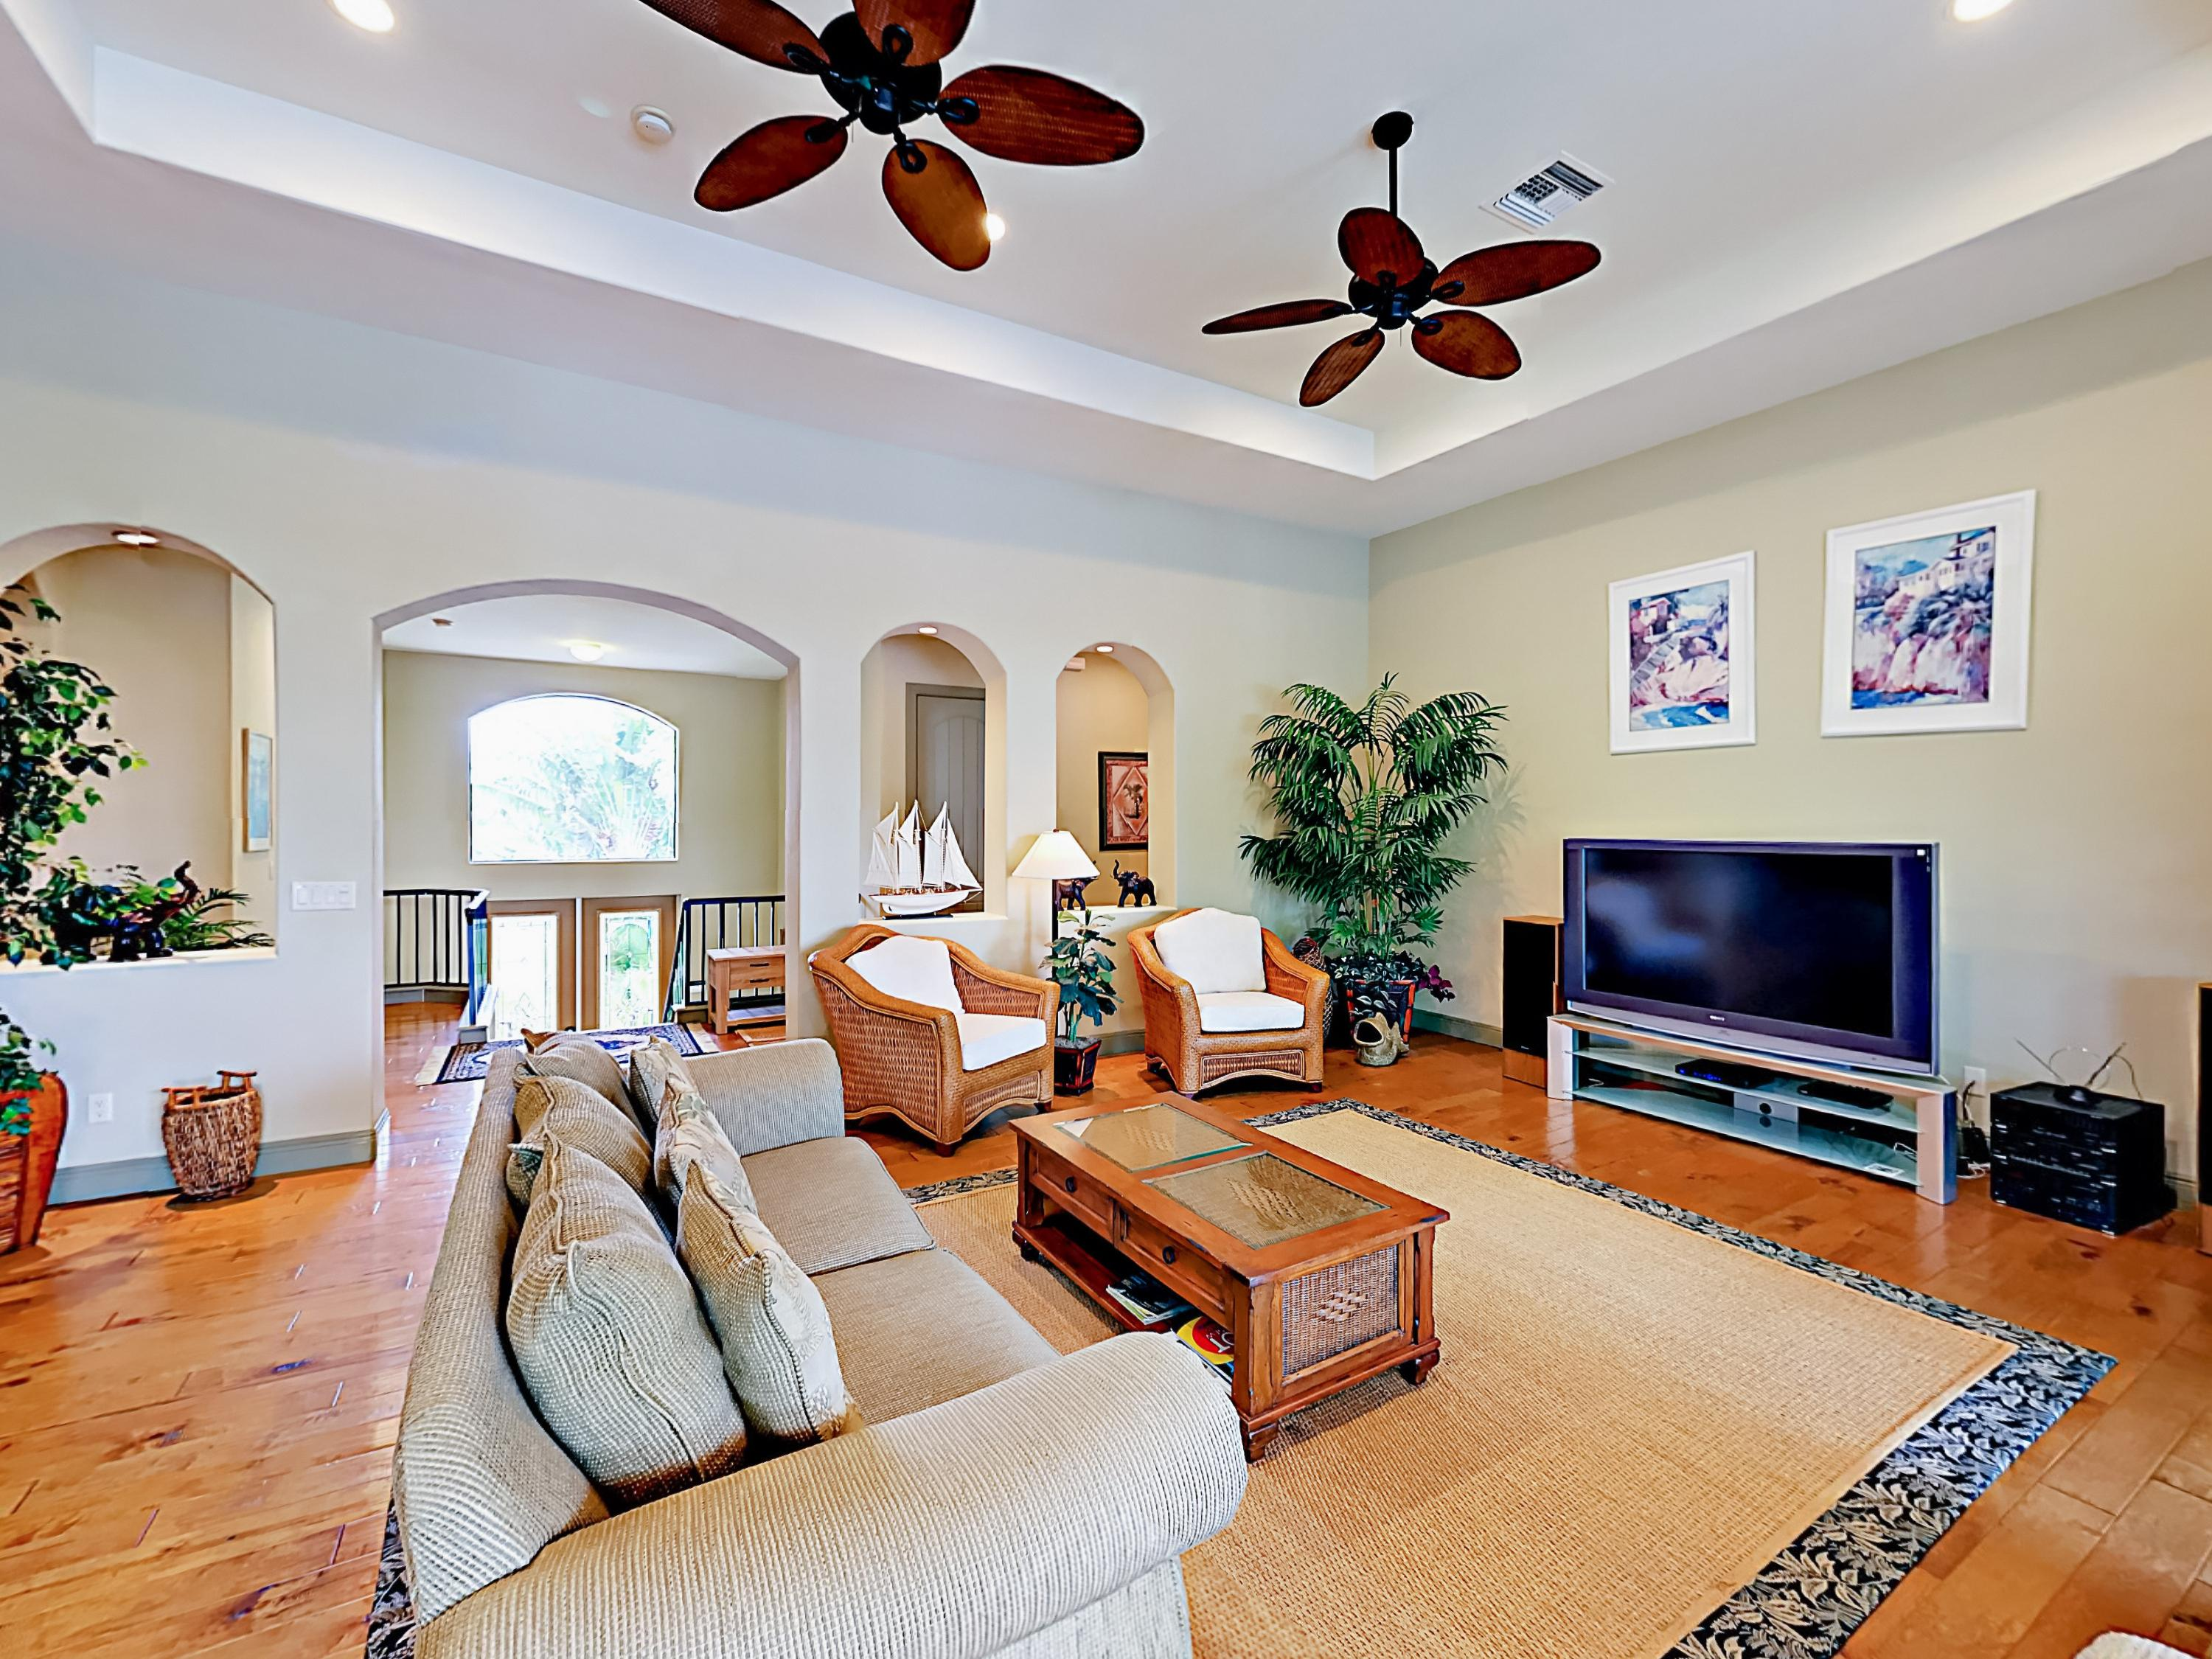 Hardwood floors add sophistication to the main living area.